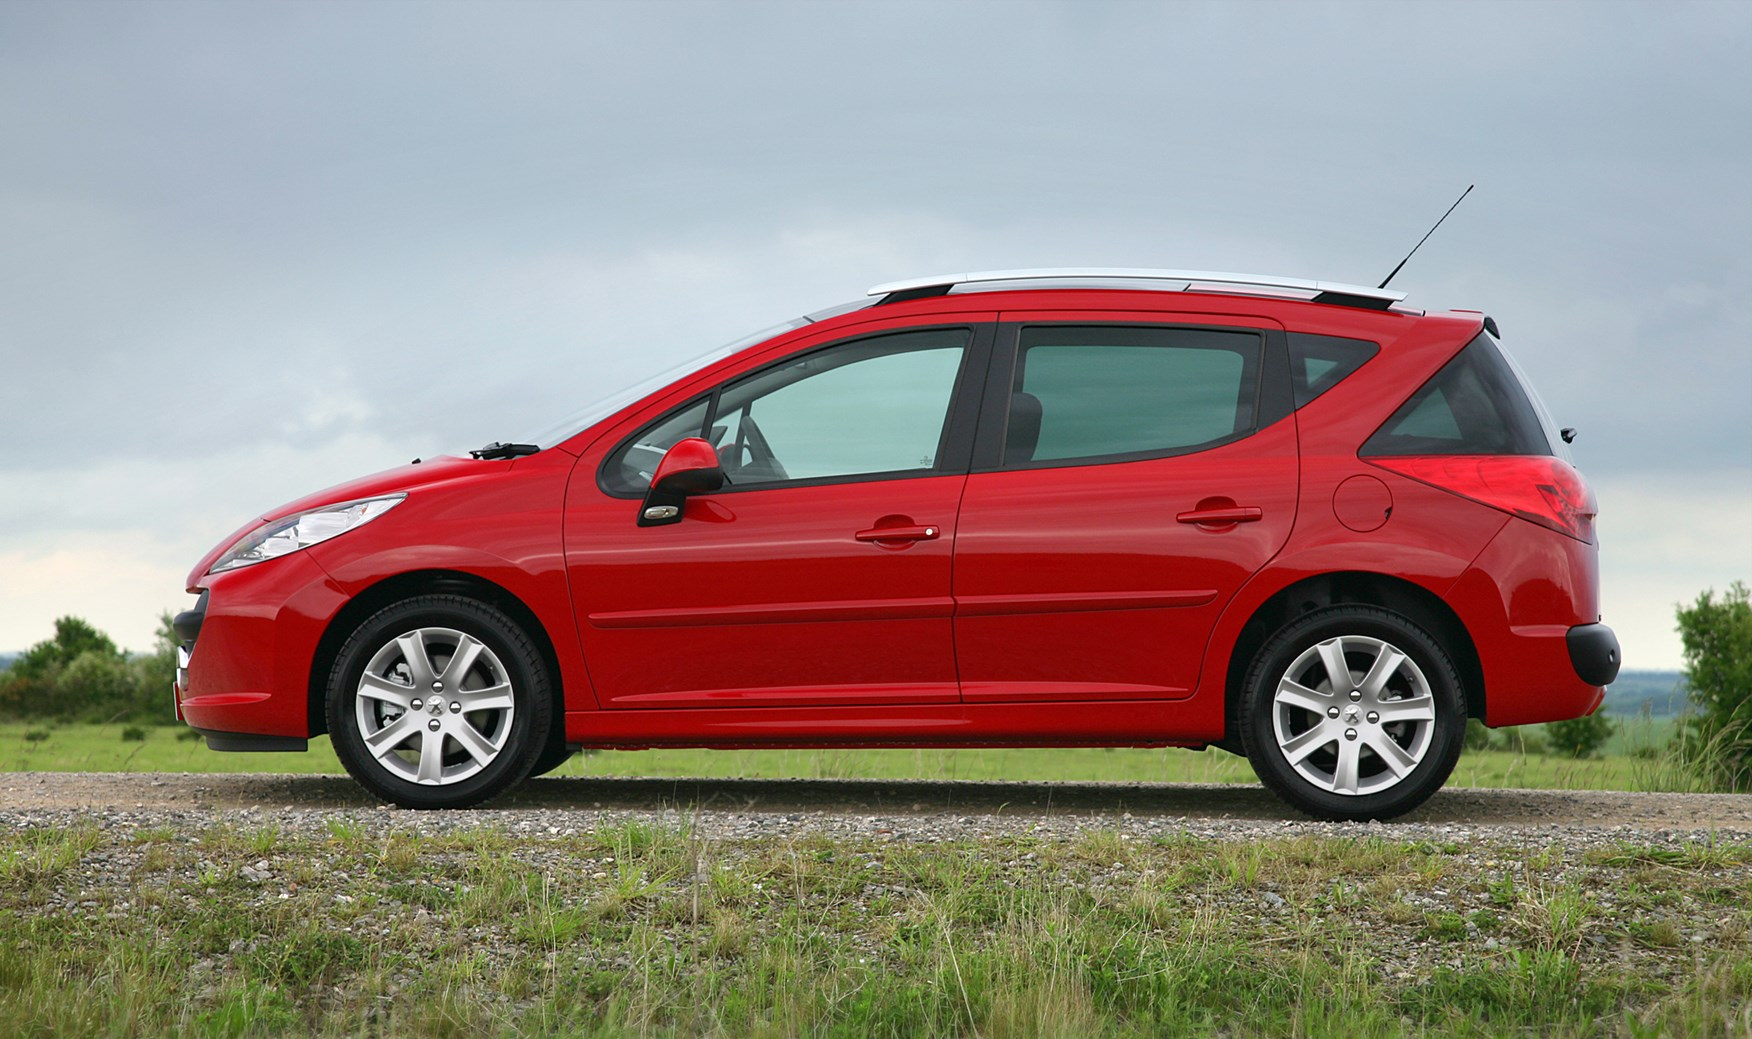 Used Peugeot 207 SW (2007 - 2013) Review